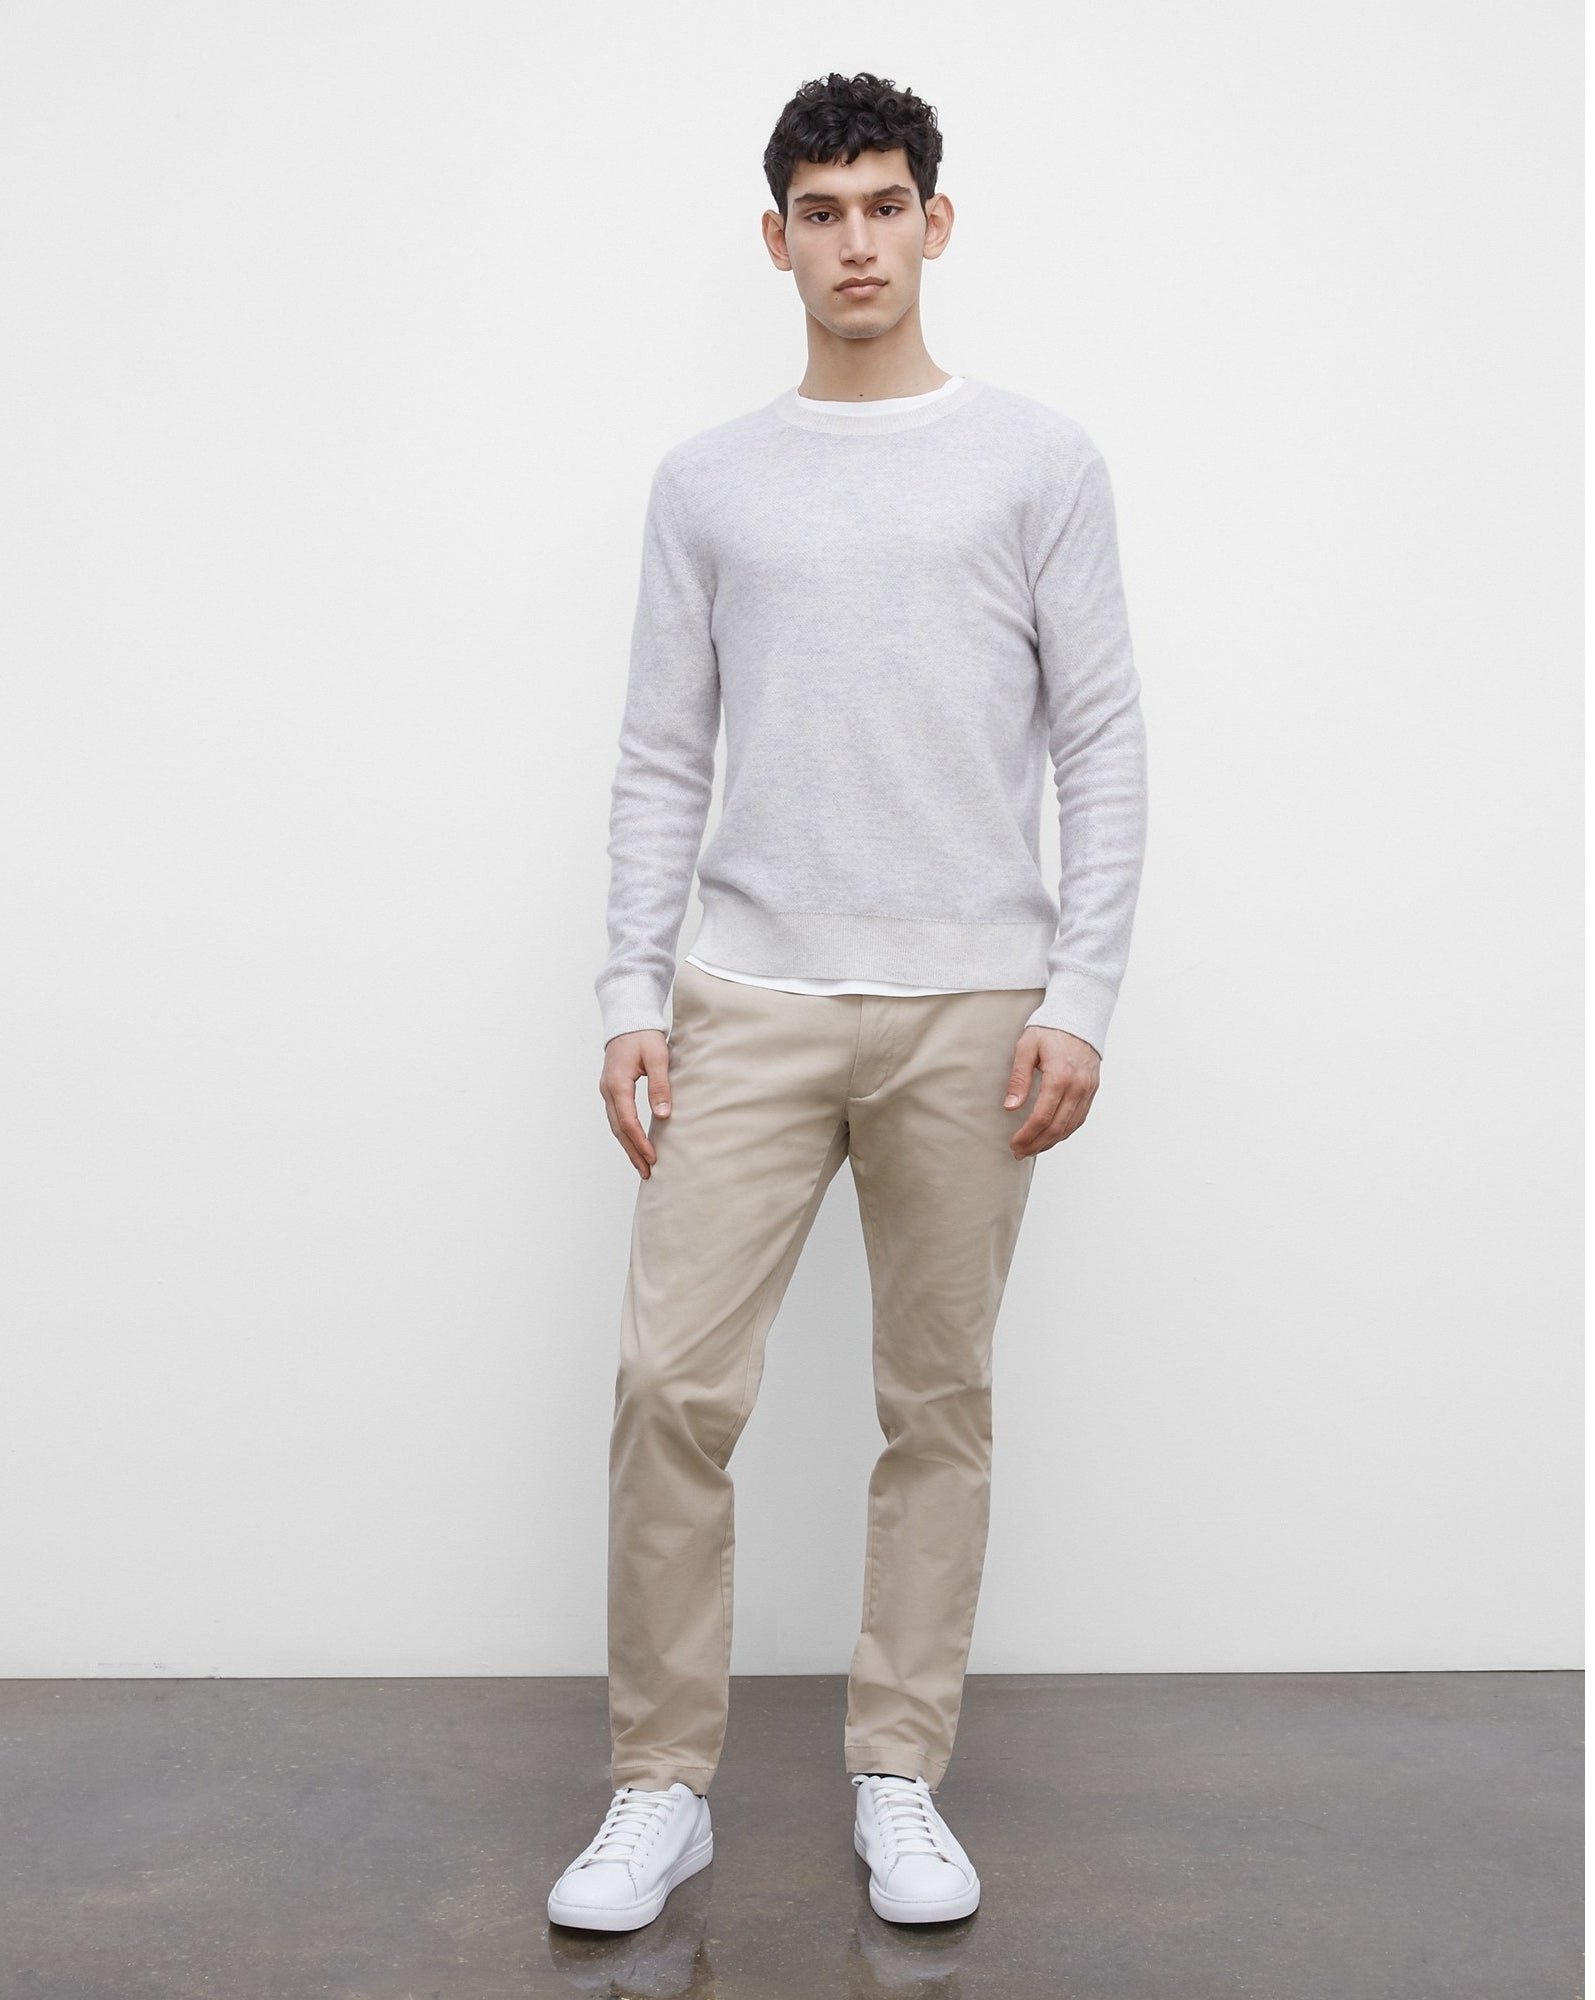 person wearing the chinos and a sweater